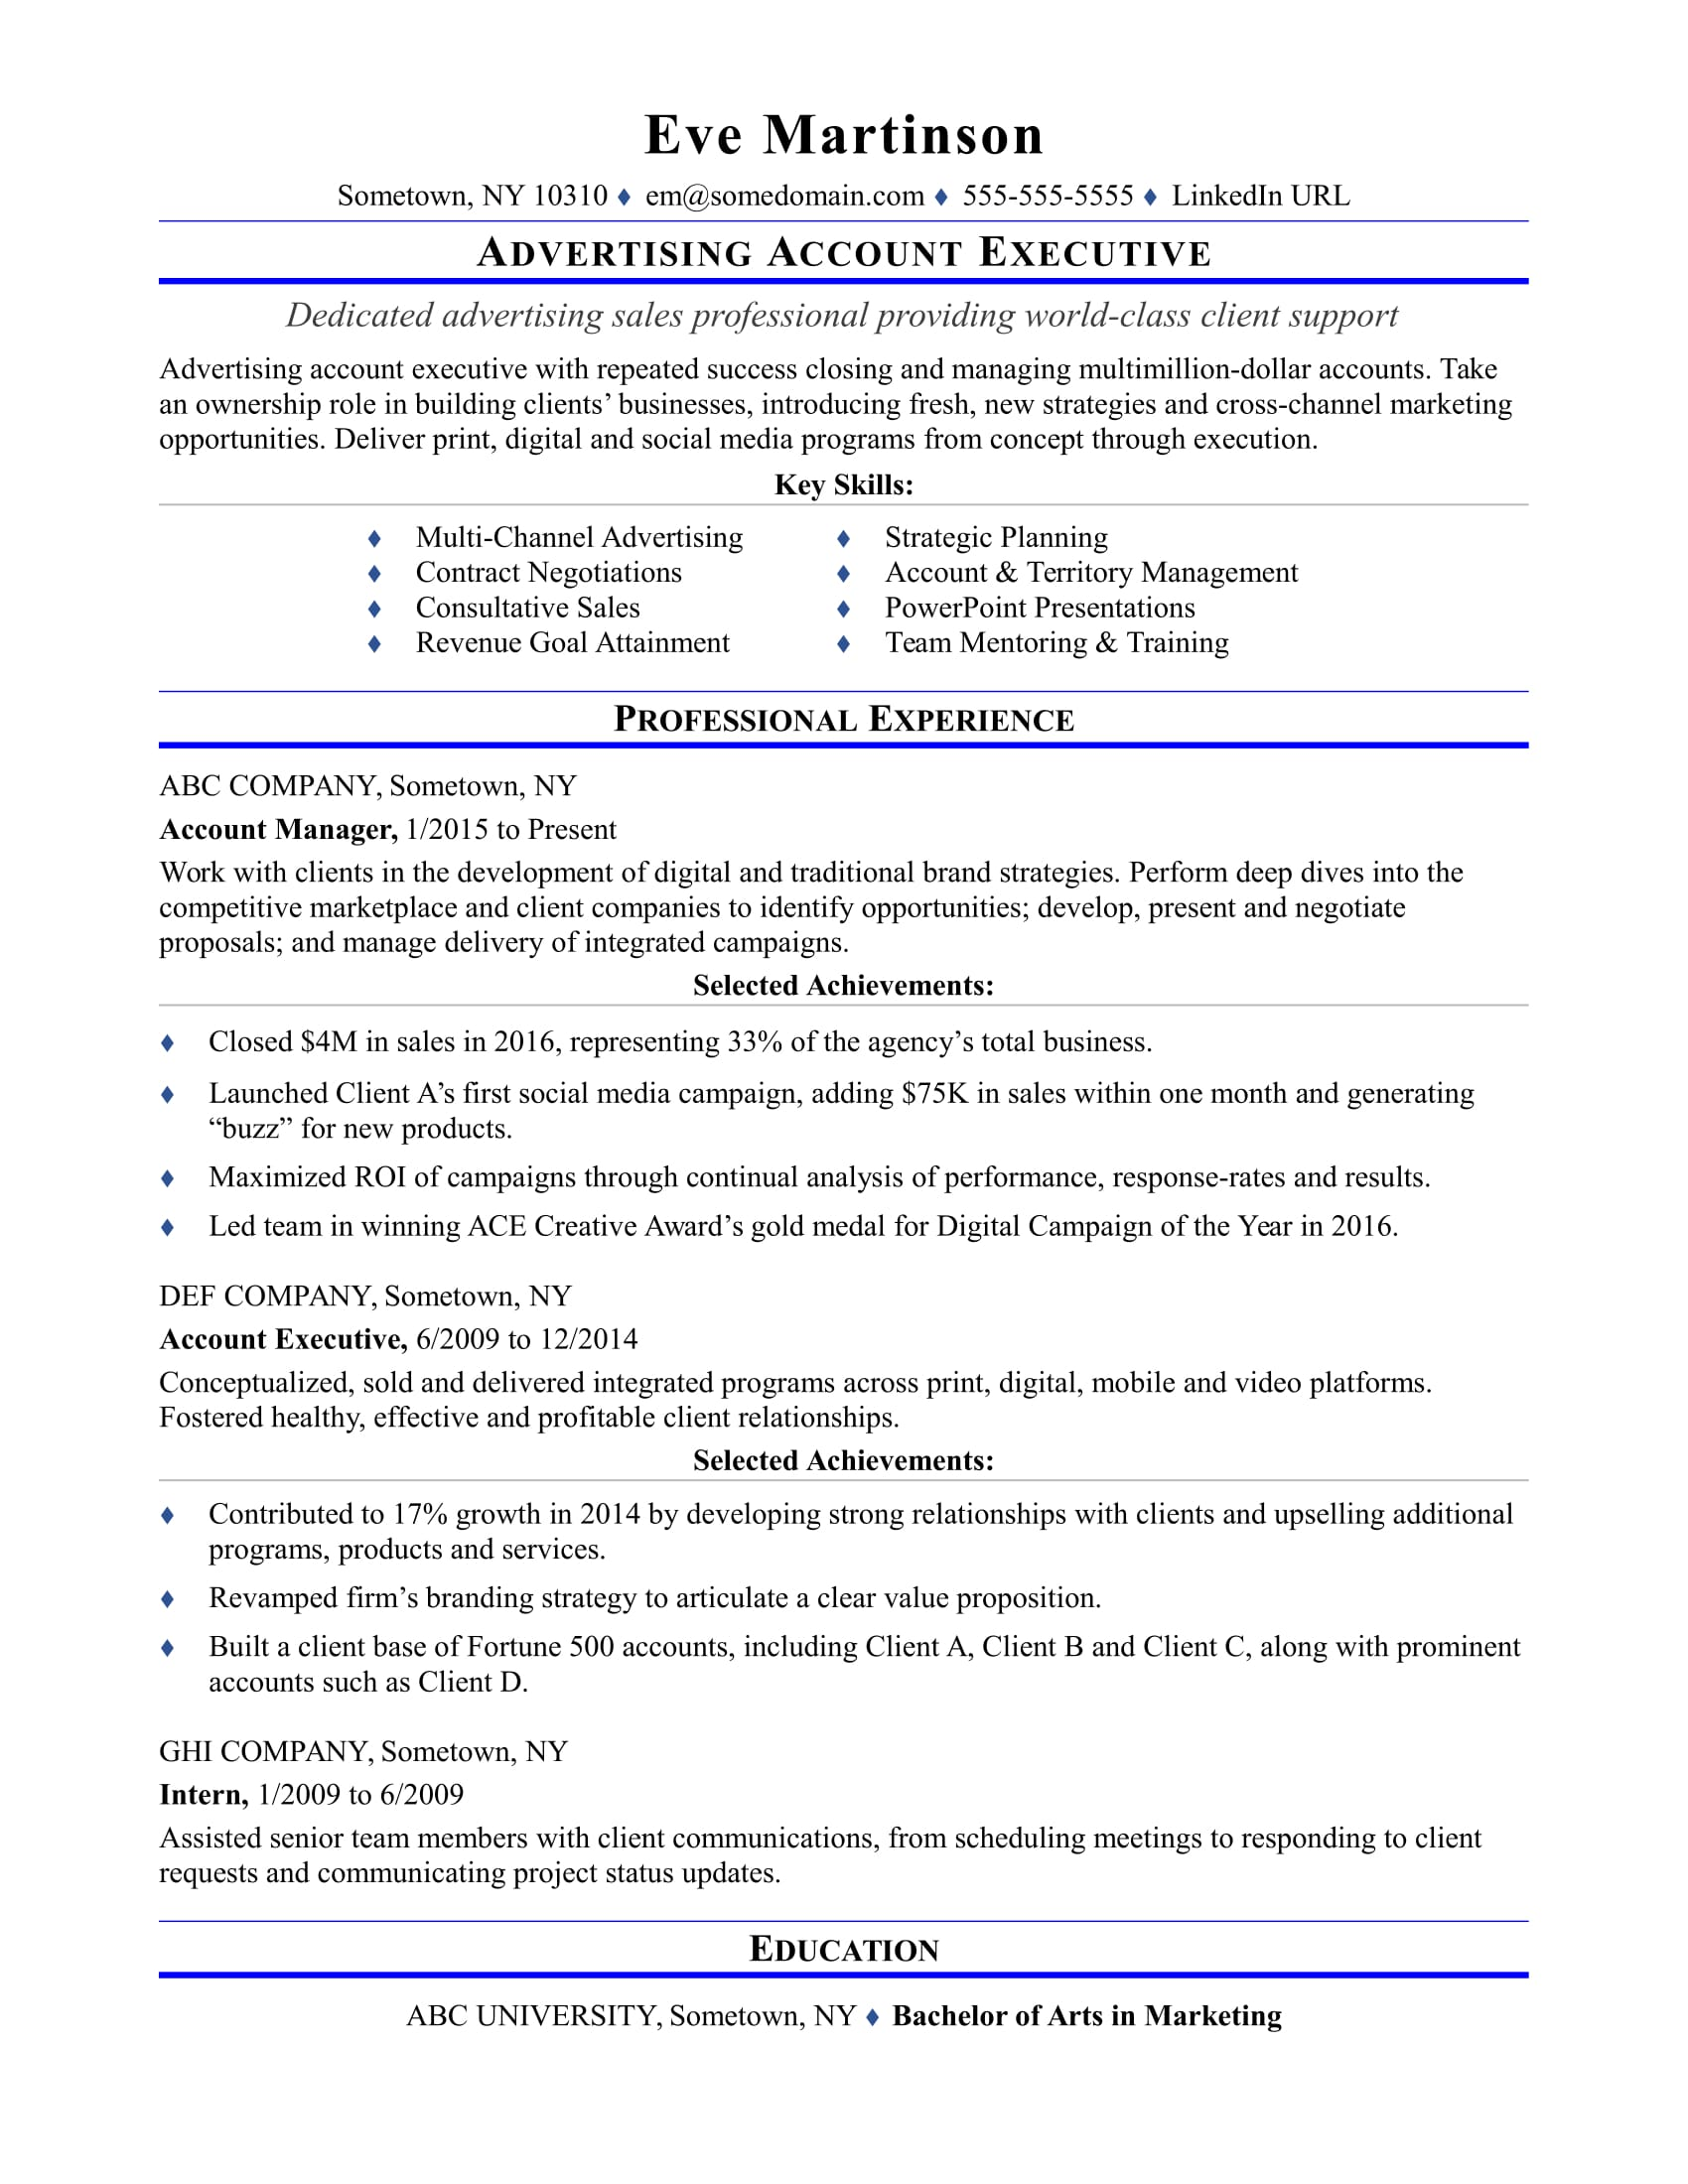 sample resume for an advertising account executive monster preparation services psg Resume Executive Resume Preparation Services